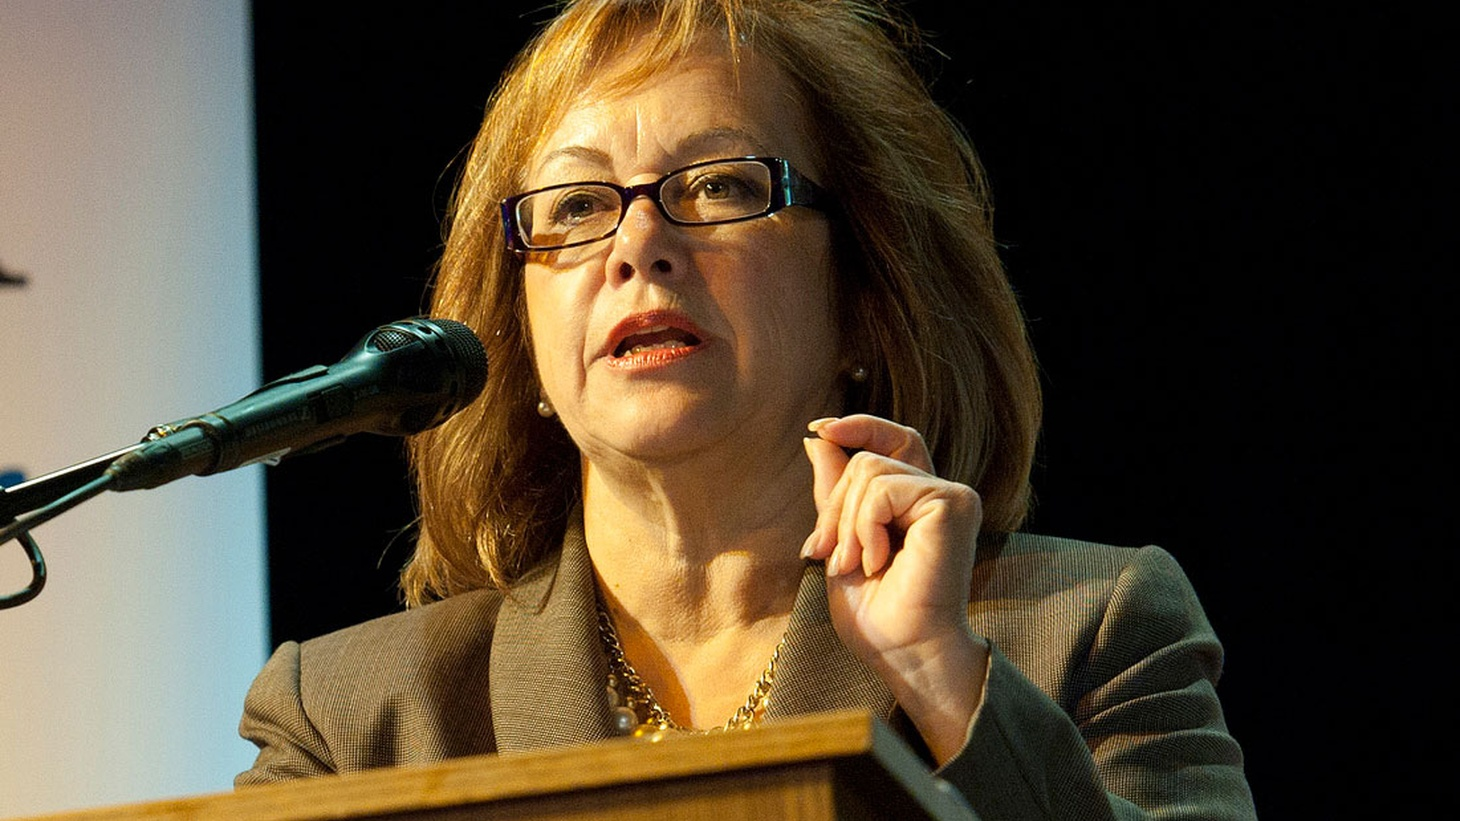 "Maria Elena Durazo has been President of the LA County Federation of Labor since 2005. The daughter of Mexican immigrants, she now leads more than 600,000 union members here in LA. The  LA Times says  she's helped make Labor ""possibly the greatest single power in [the city's] electoral politics."""